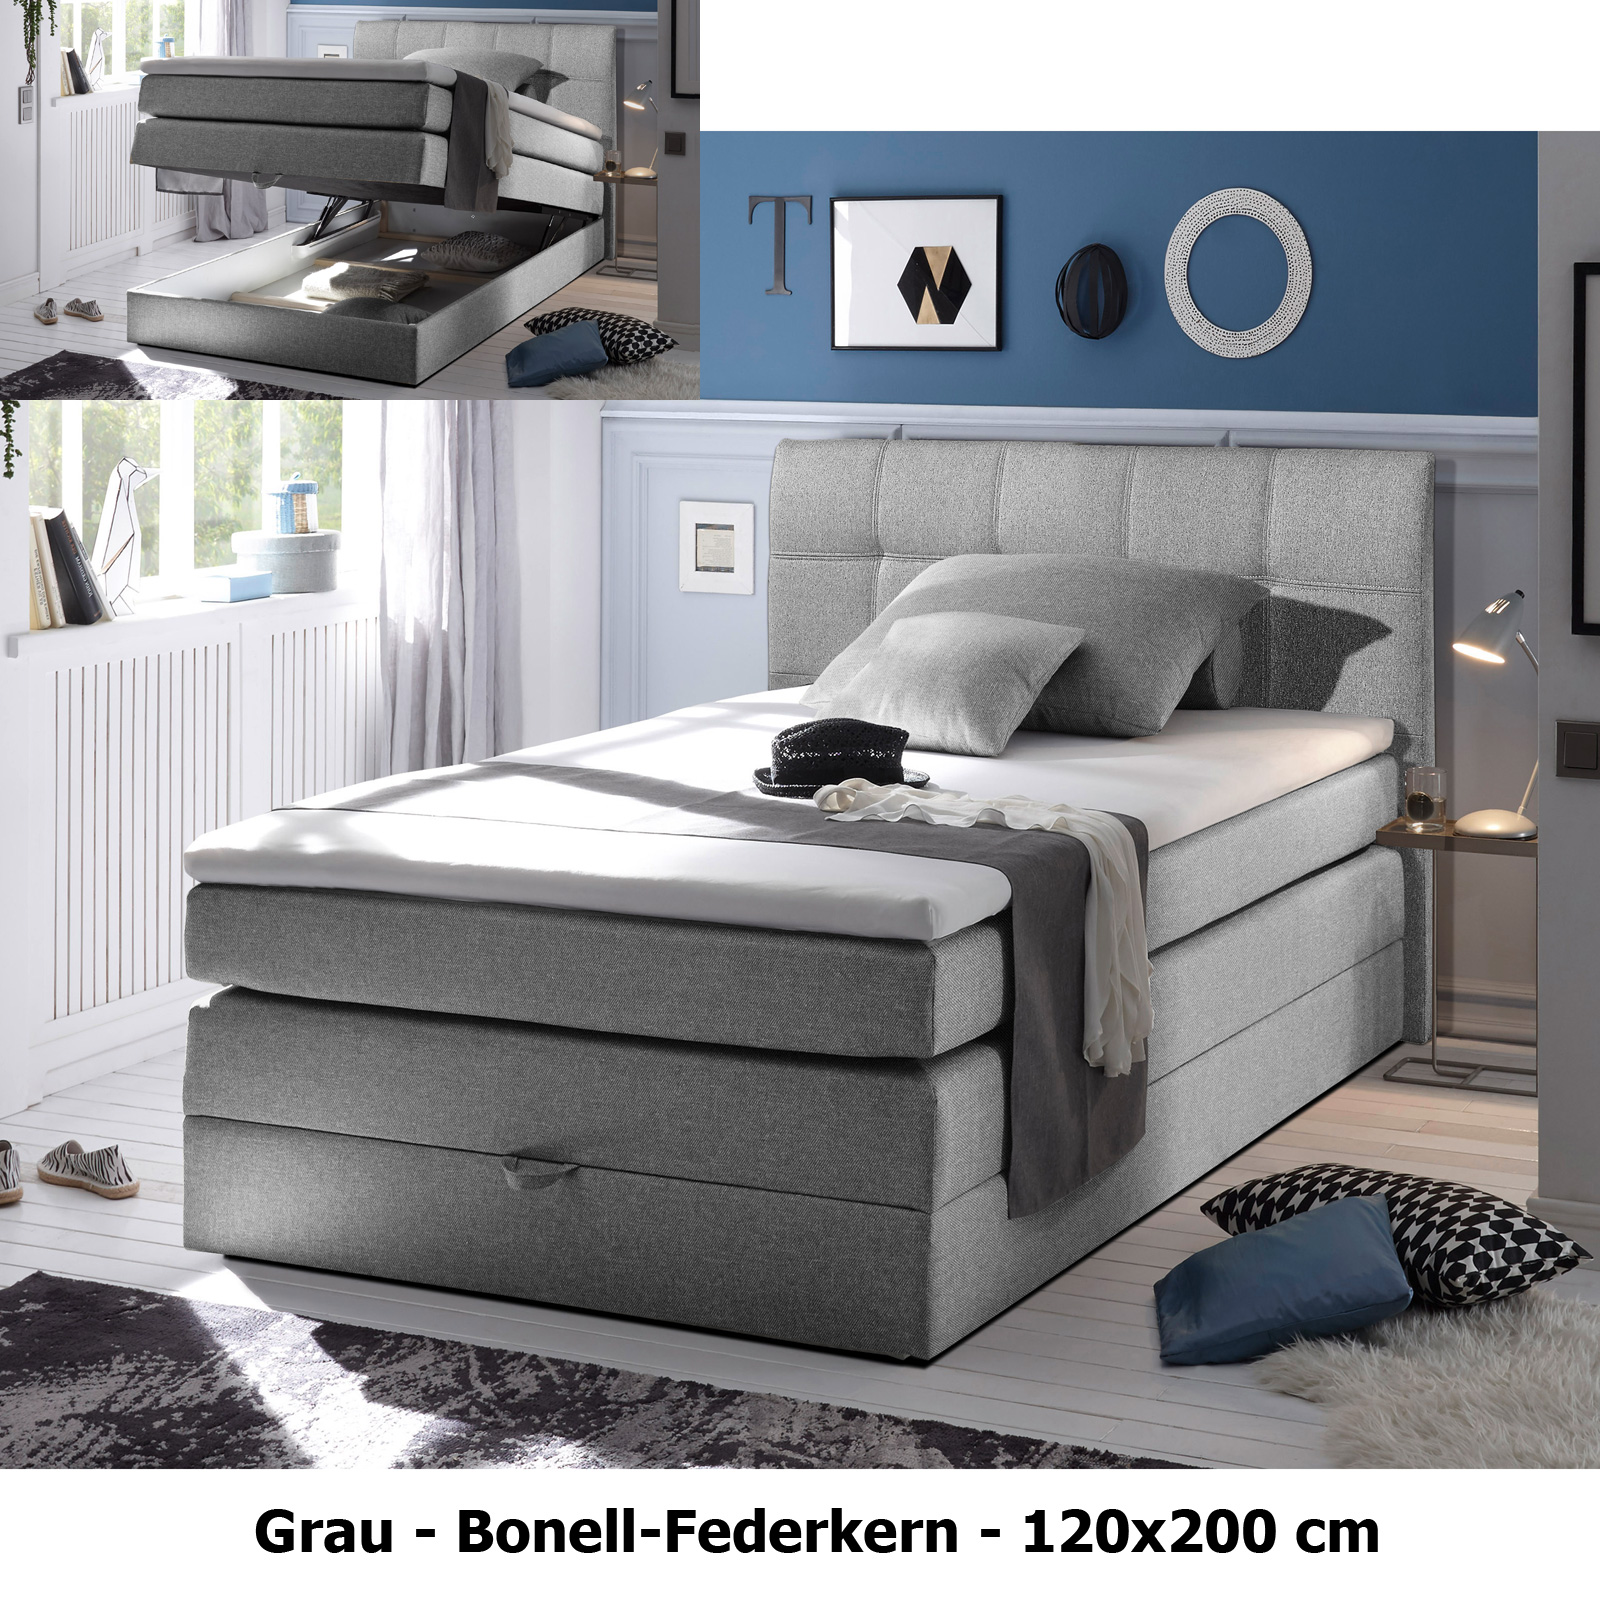 boxspringbett new bedford beige grau braun bonell federkern bettkasten 120x200 ebay. Black Bedroom Furniture Sets. Home Design Ideas